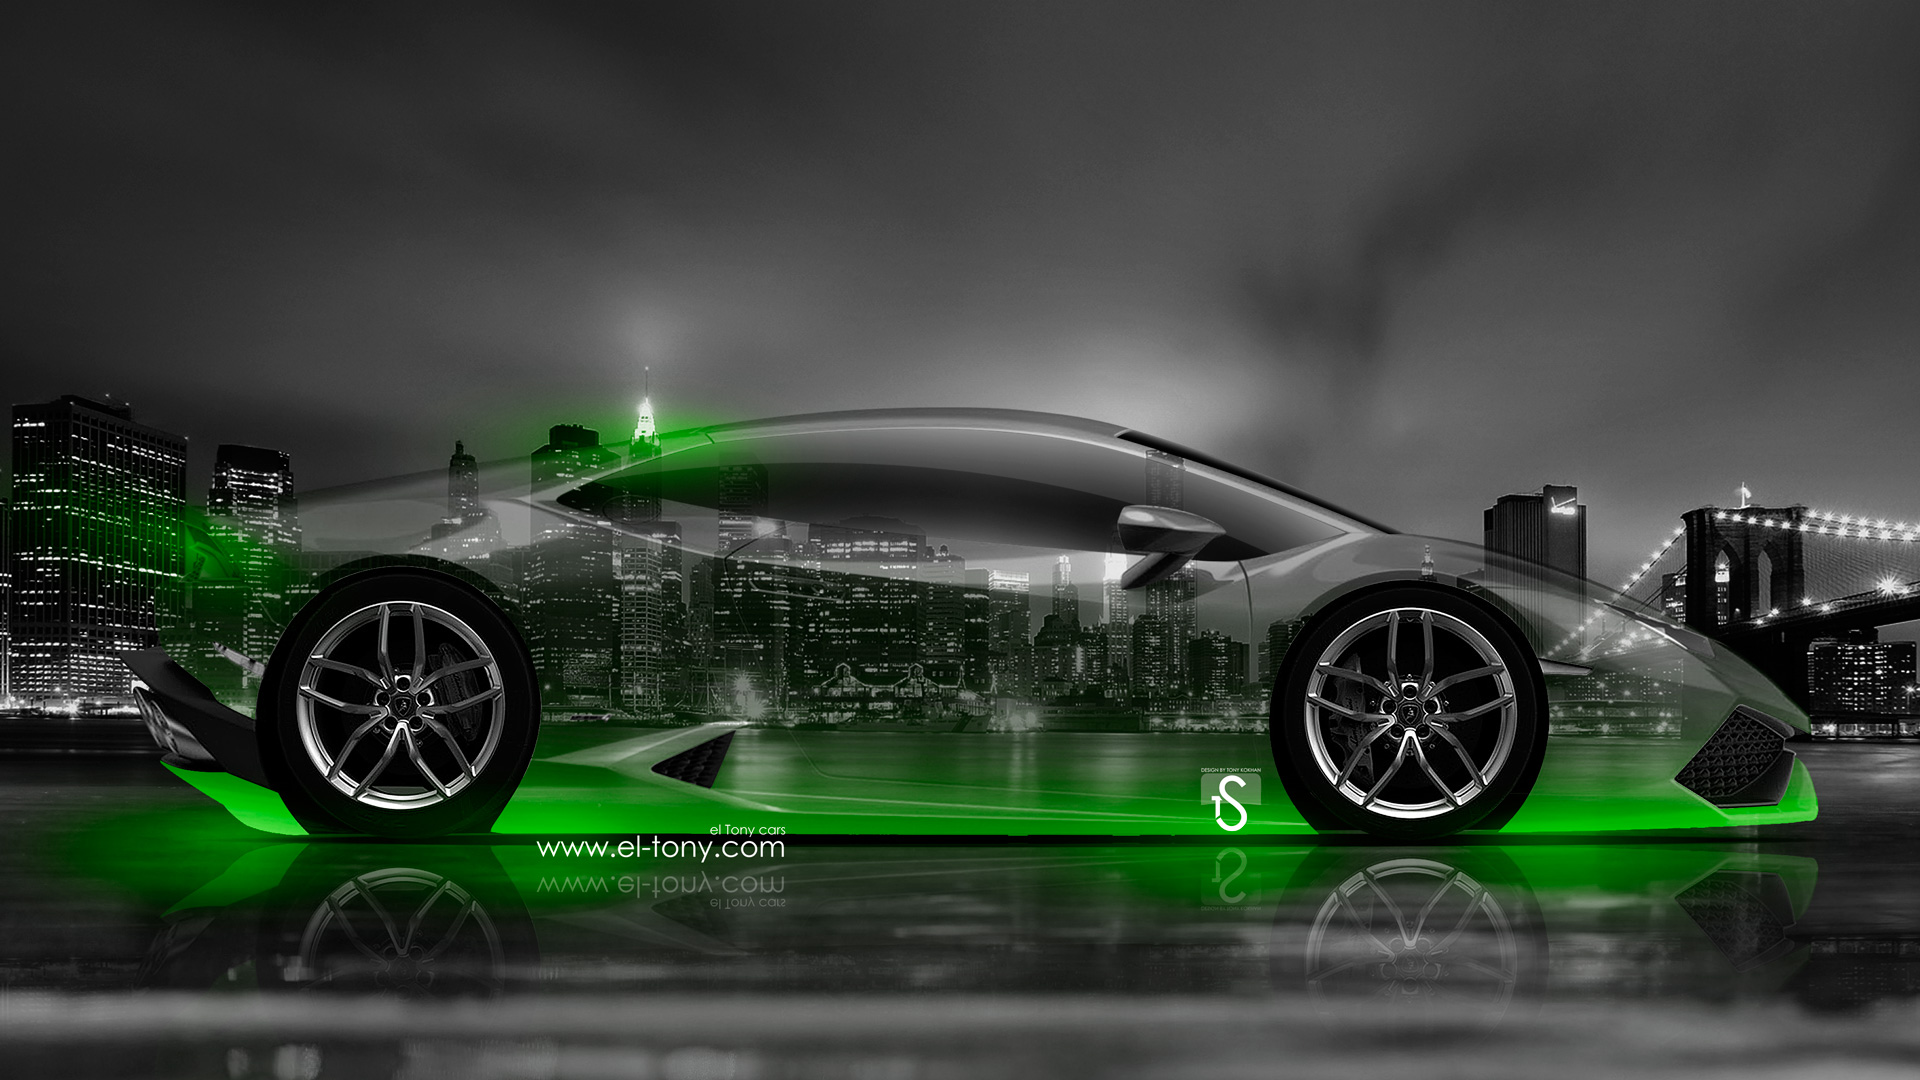 Beau ... Lamborghini Huracan Side Crystal City Car 2014 Green  ...